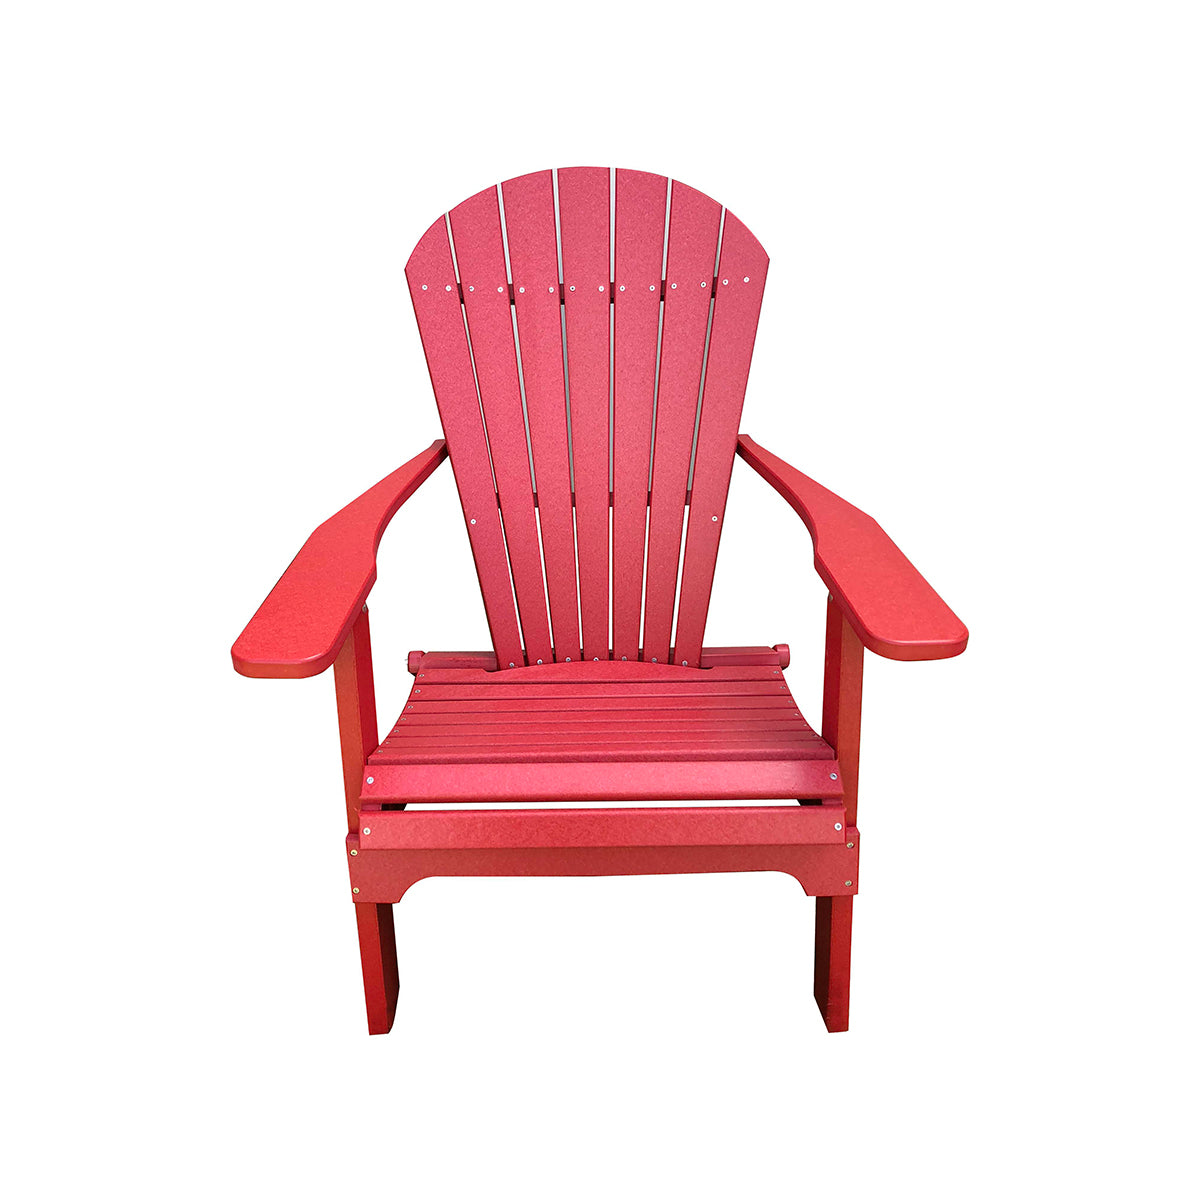 Wondrous Outdoor Rustic Polywood Folding Adirondack Chair Cardinal Red Squirreltailoven Fun Painted Chair Ideas Images Squirreltailovenorg